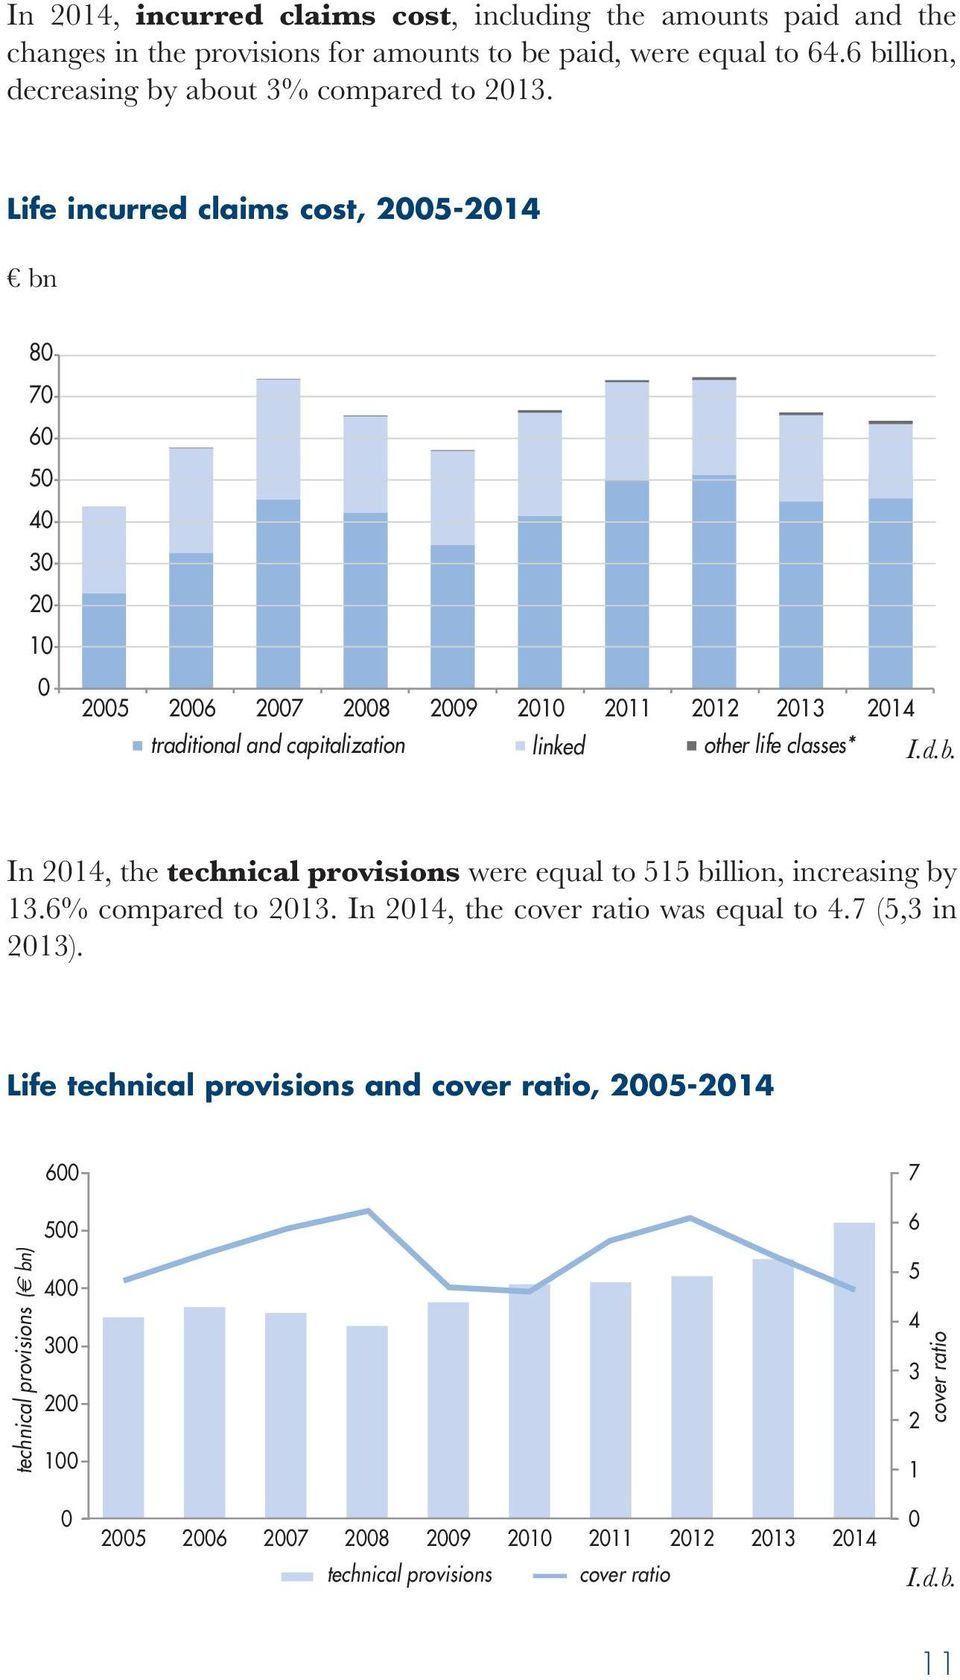 the technical provisions were equal to 515 billion, increasing by 13.6 compared to 2013. In 2014, the cover ratio was equal to 4.7 (5,3 in 2013).